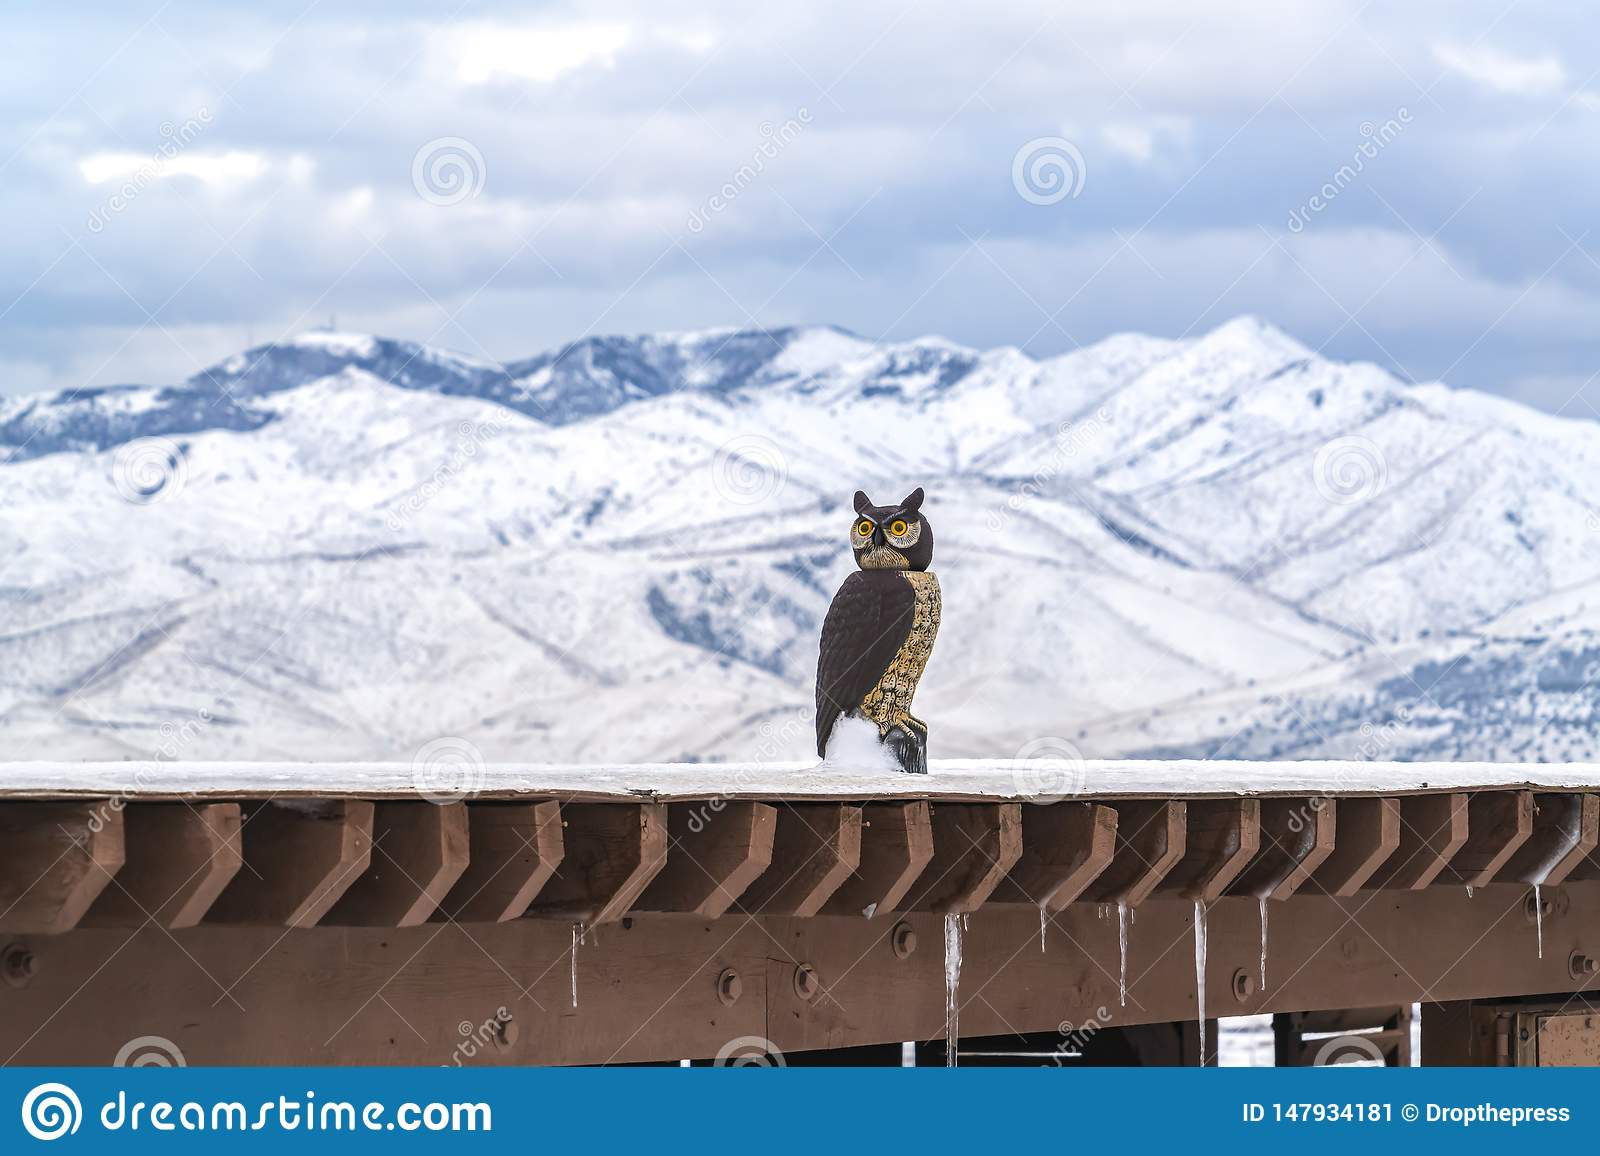 Roof Of A Building Coated With Snow With An Owl Sculpture